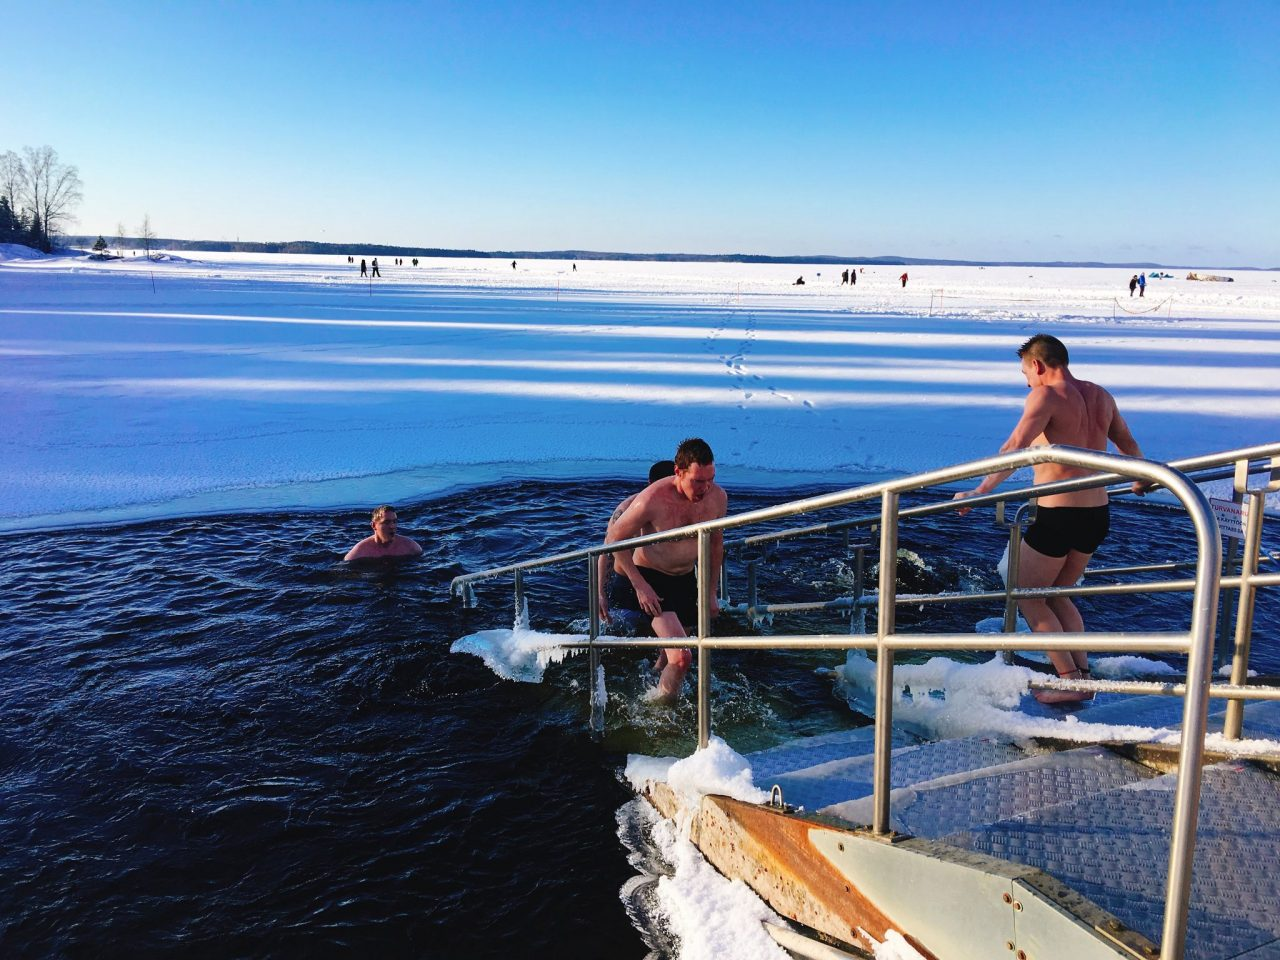 swimming in iced lake in Finland